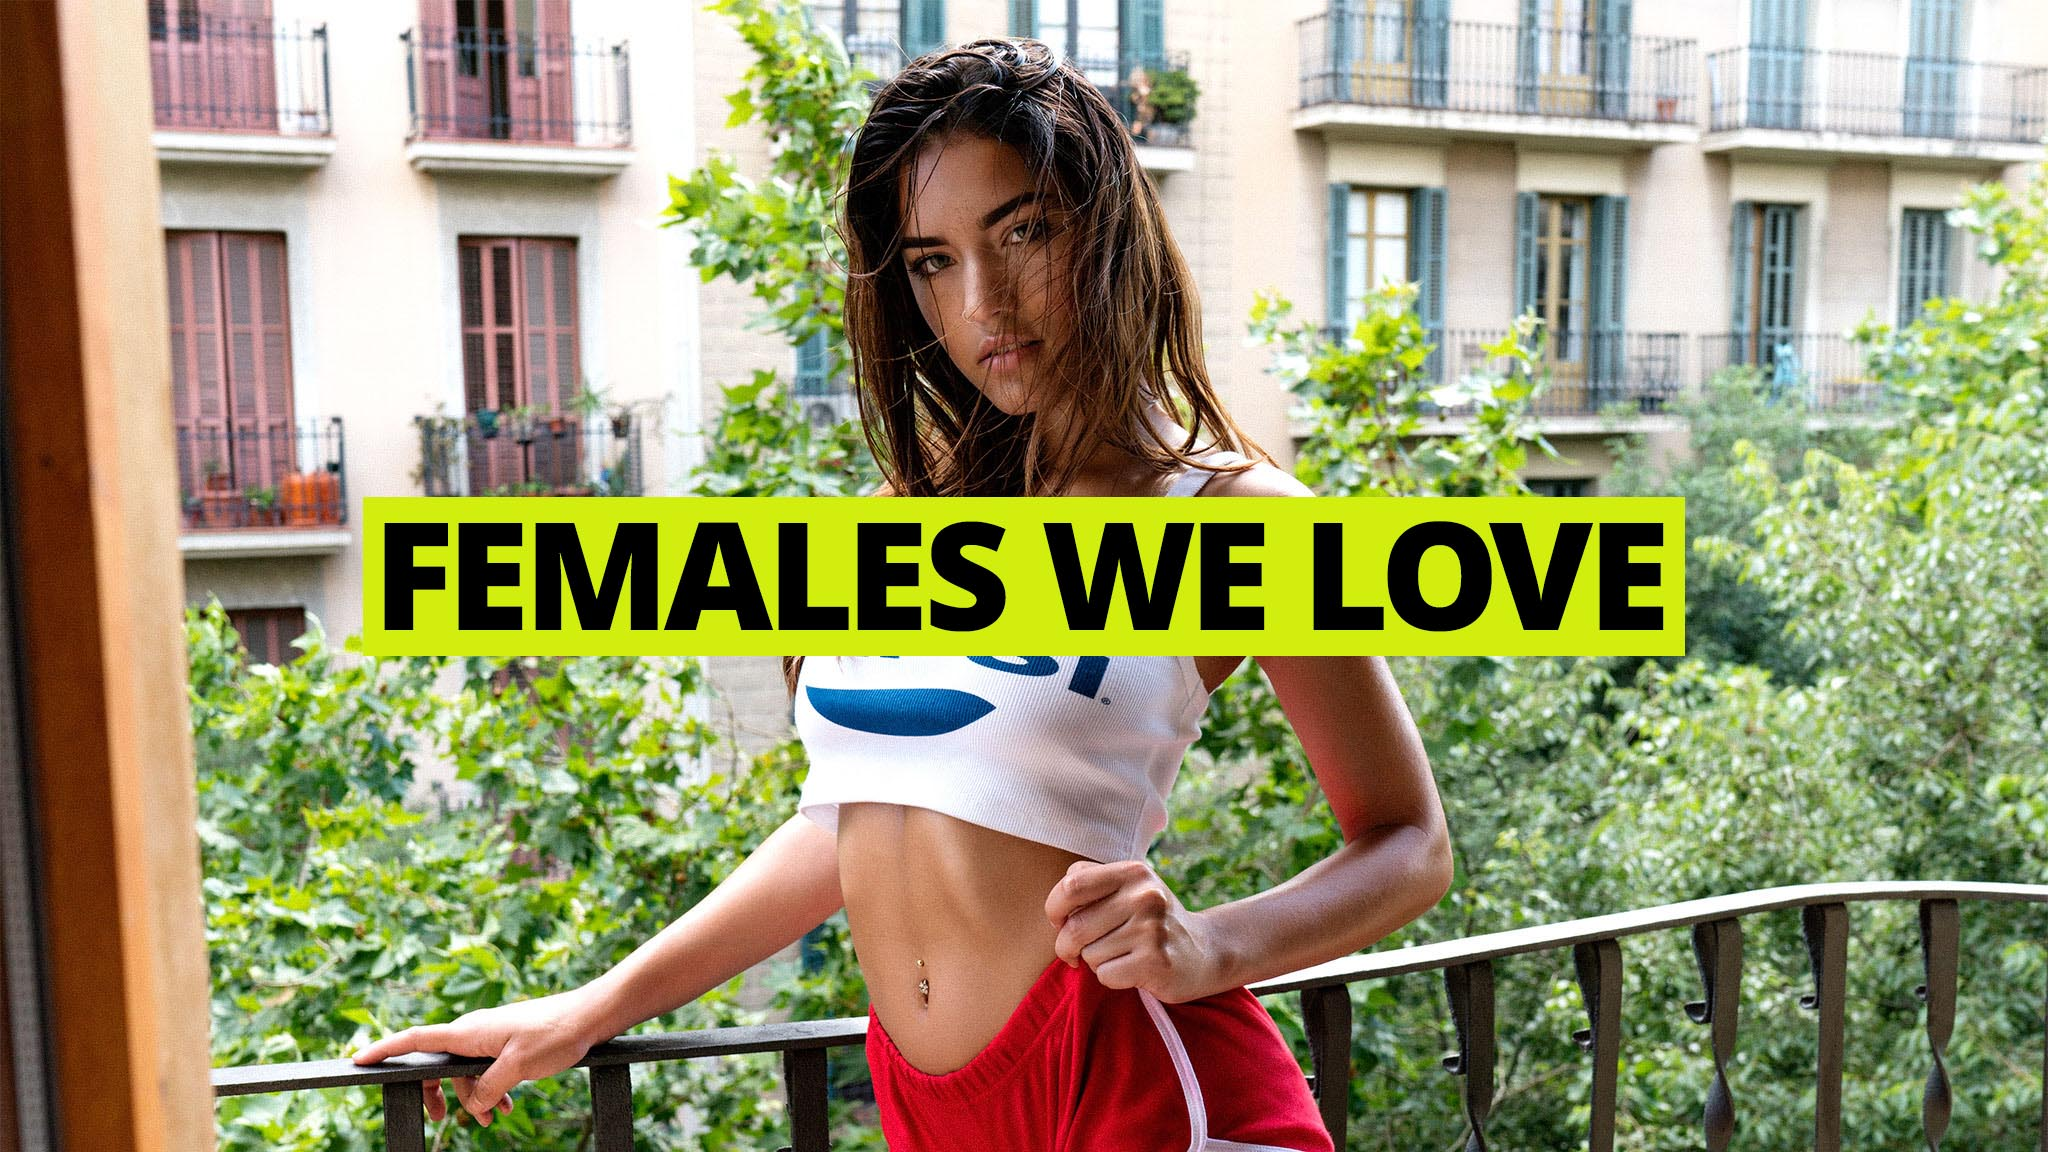 New Kiss on the Blog: Females We Love